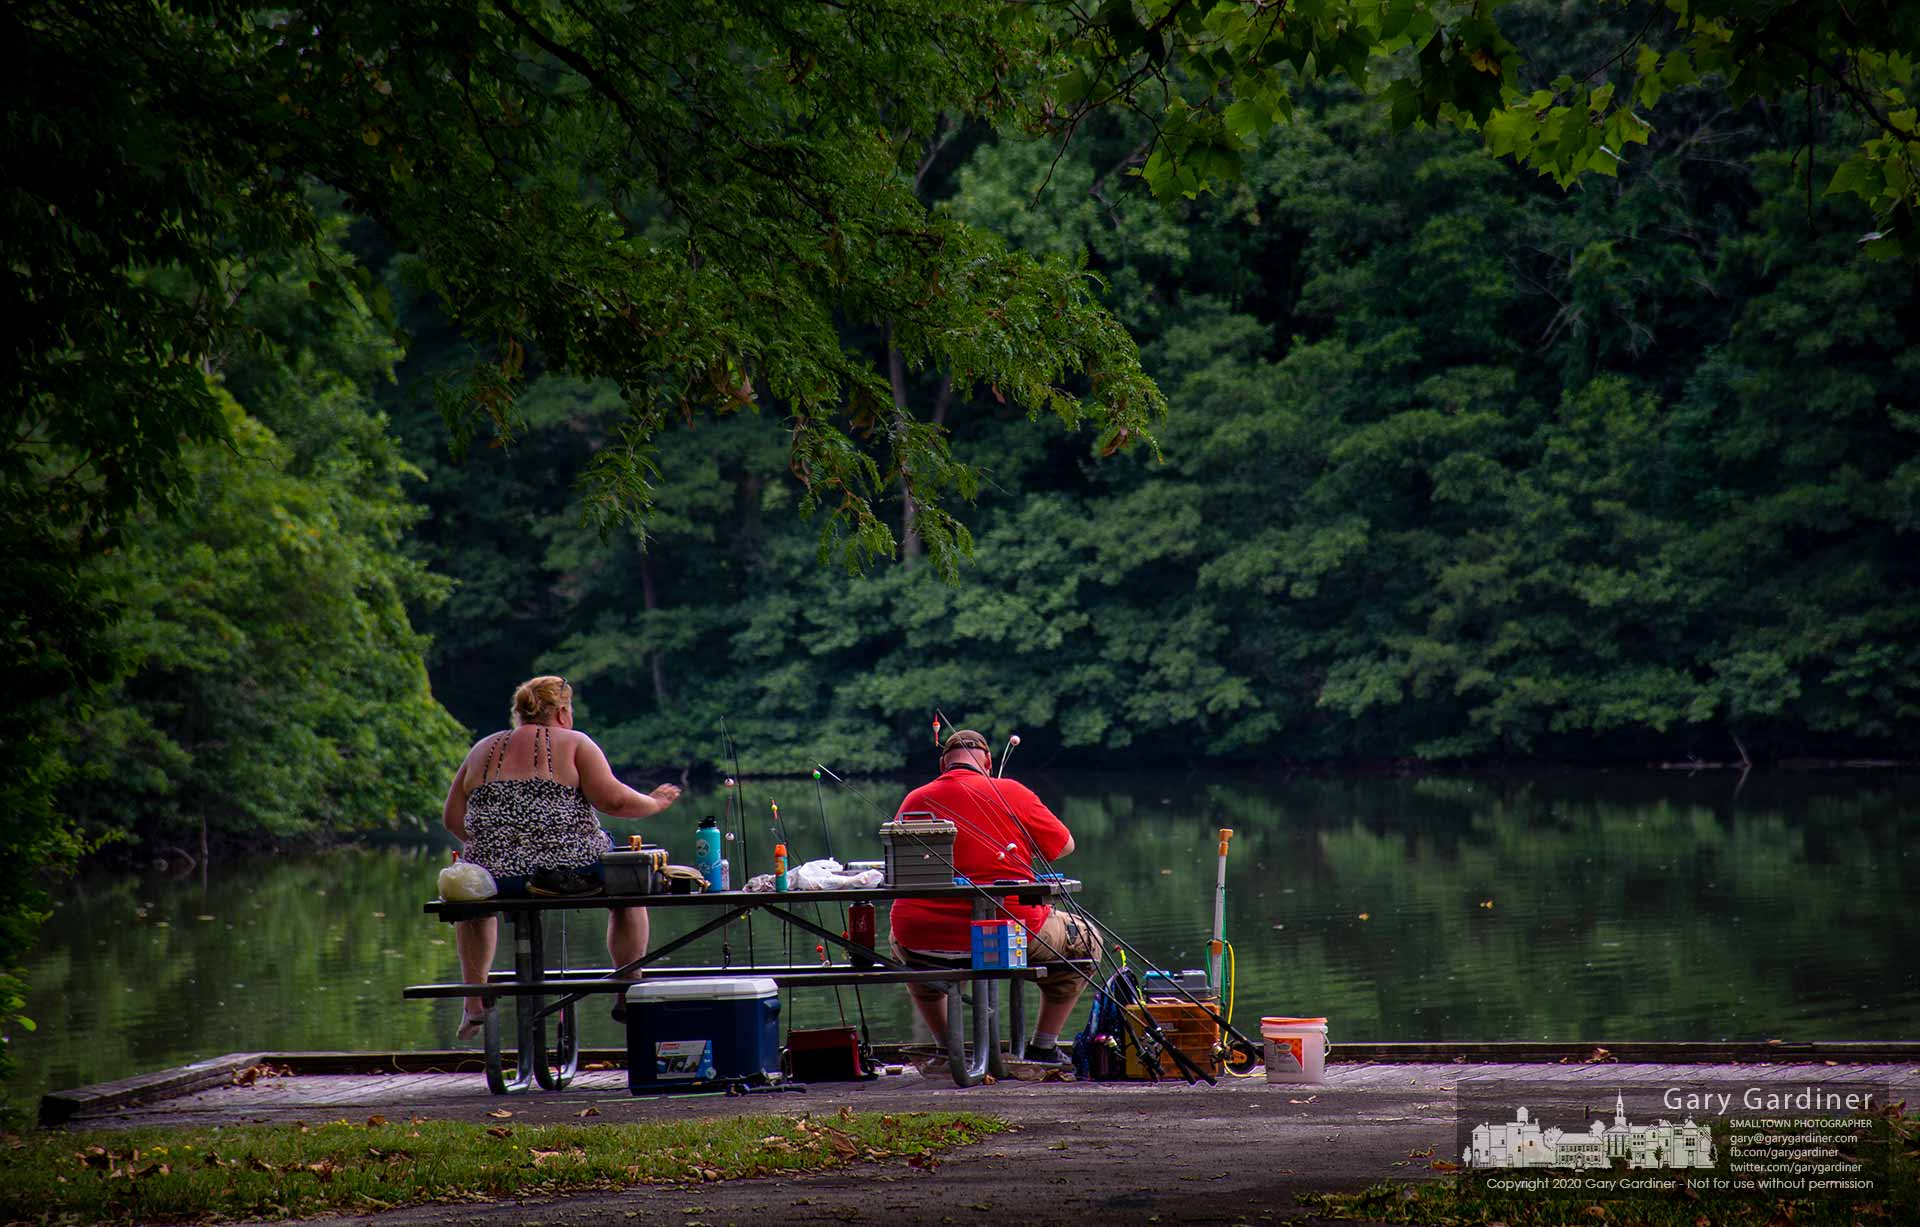 Two people sit at a picnic table with a variety of rods and reels for themselves and their children as they fish at the pond in Sharon Woods Metro Park. My Final Photo for July 30, 2020.